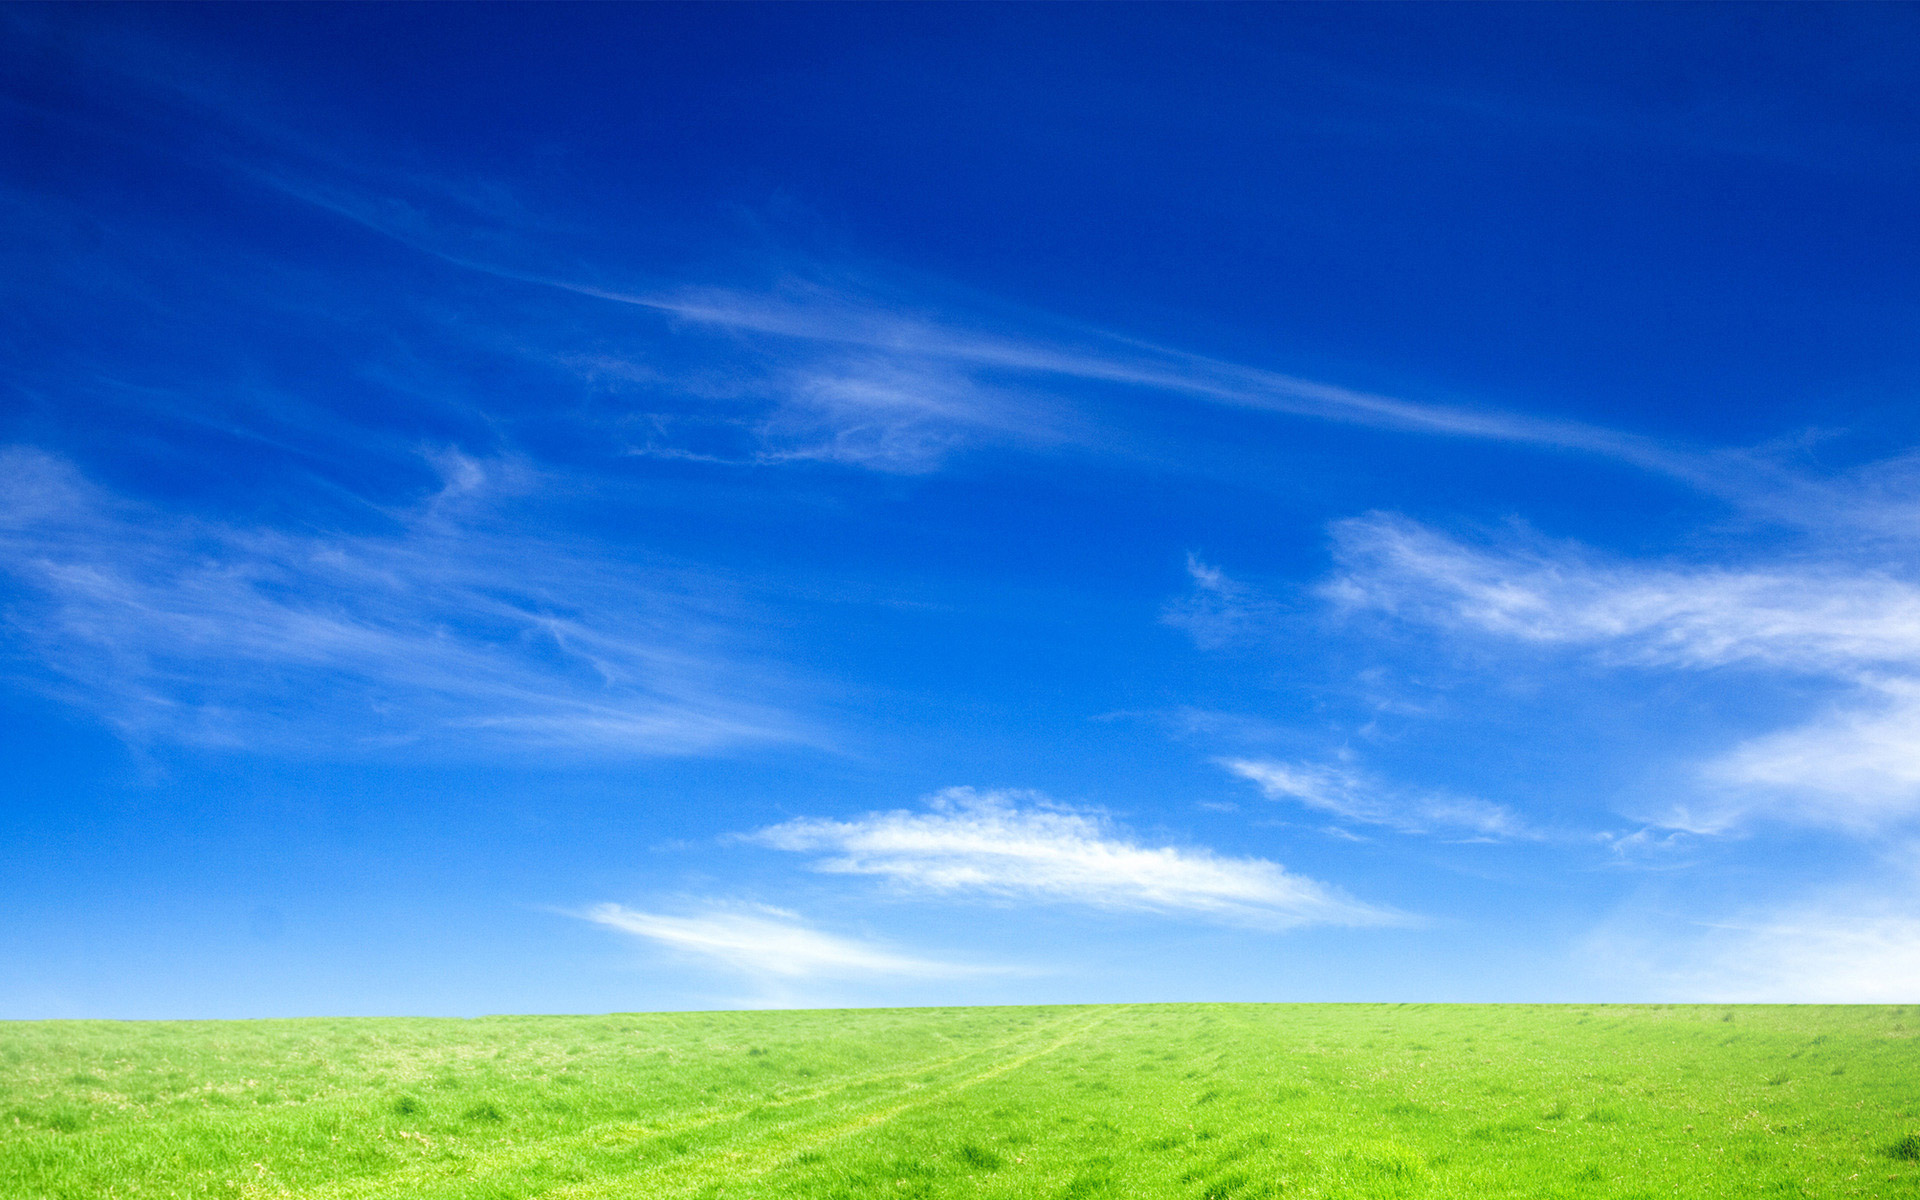 Blue Sky and Green Grass Desktop and mobile wallpaper Wallippo 1920x1200